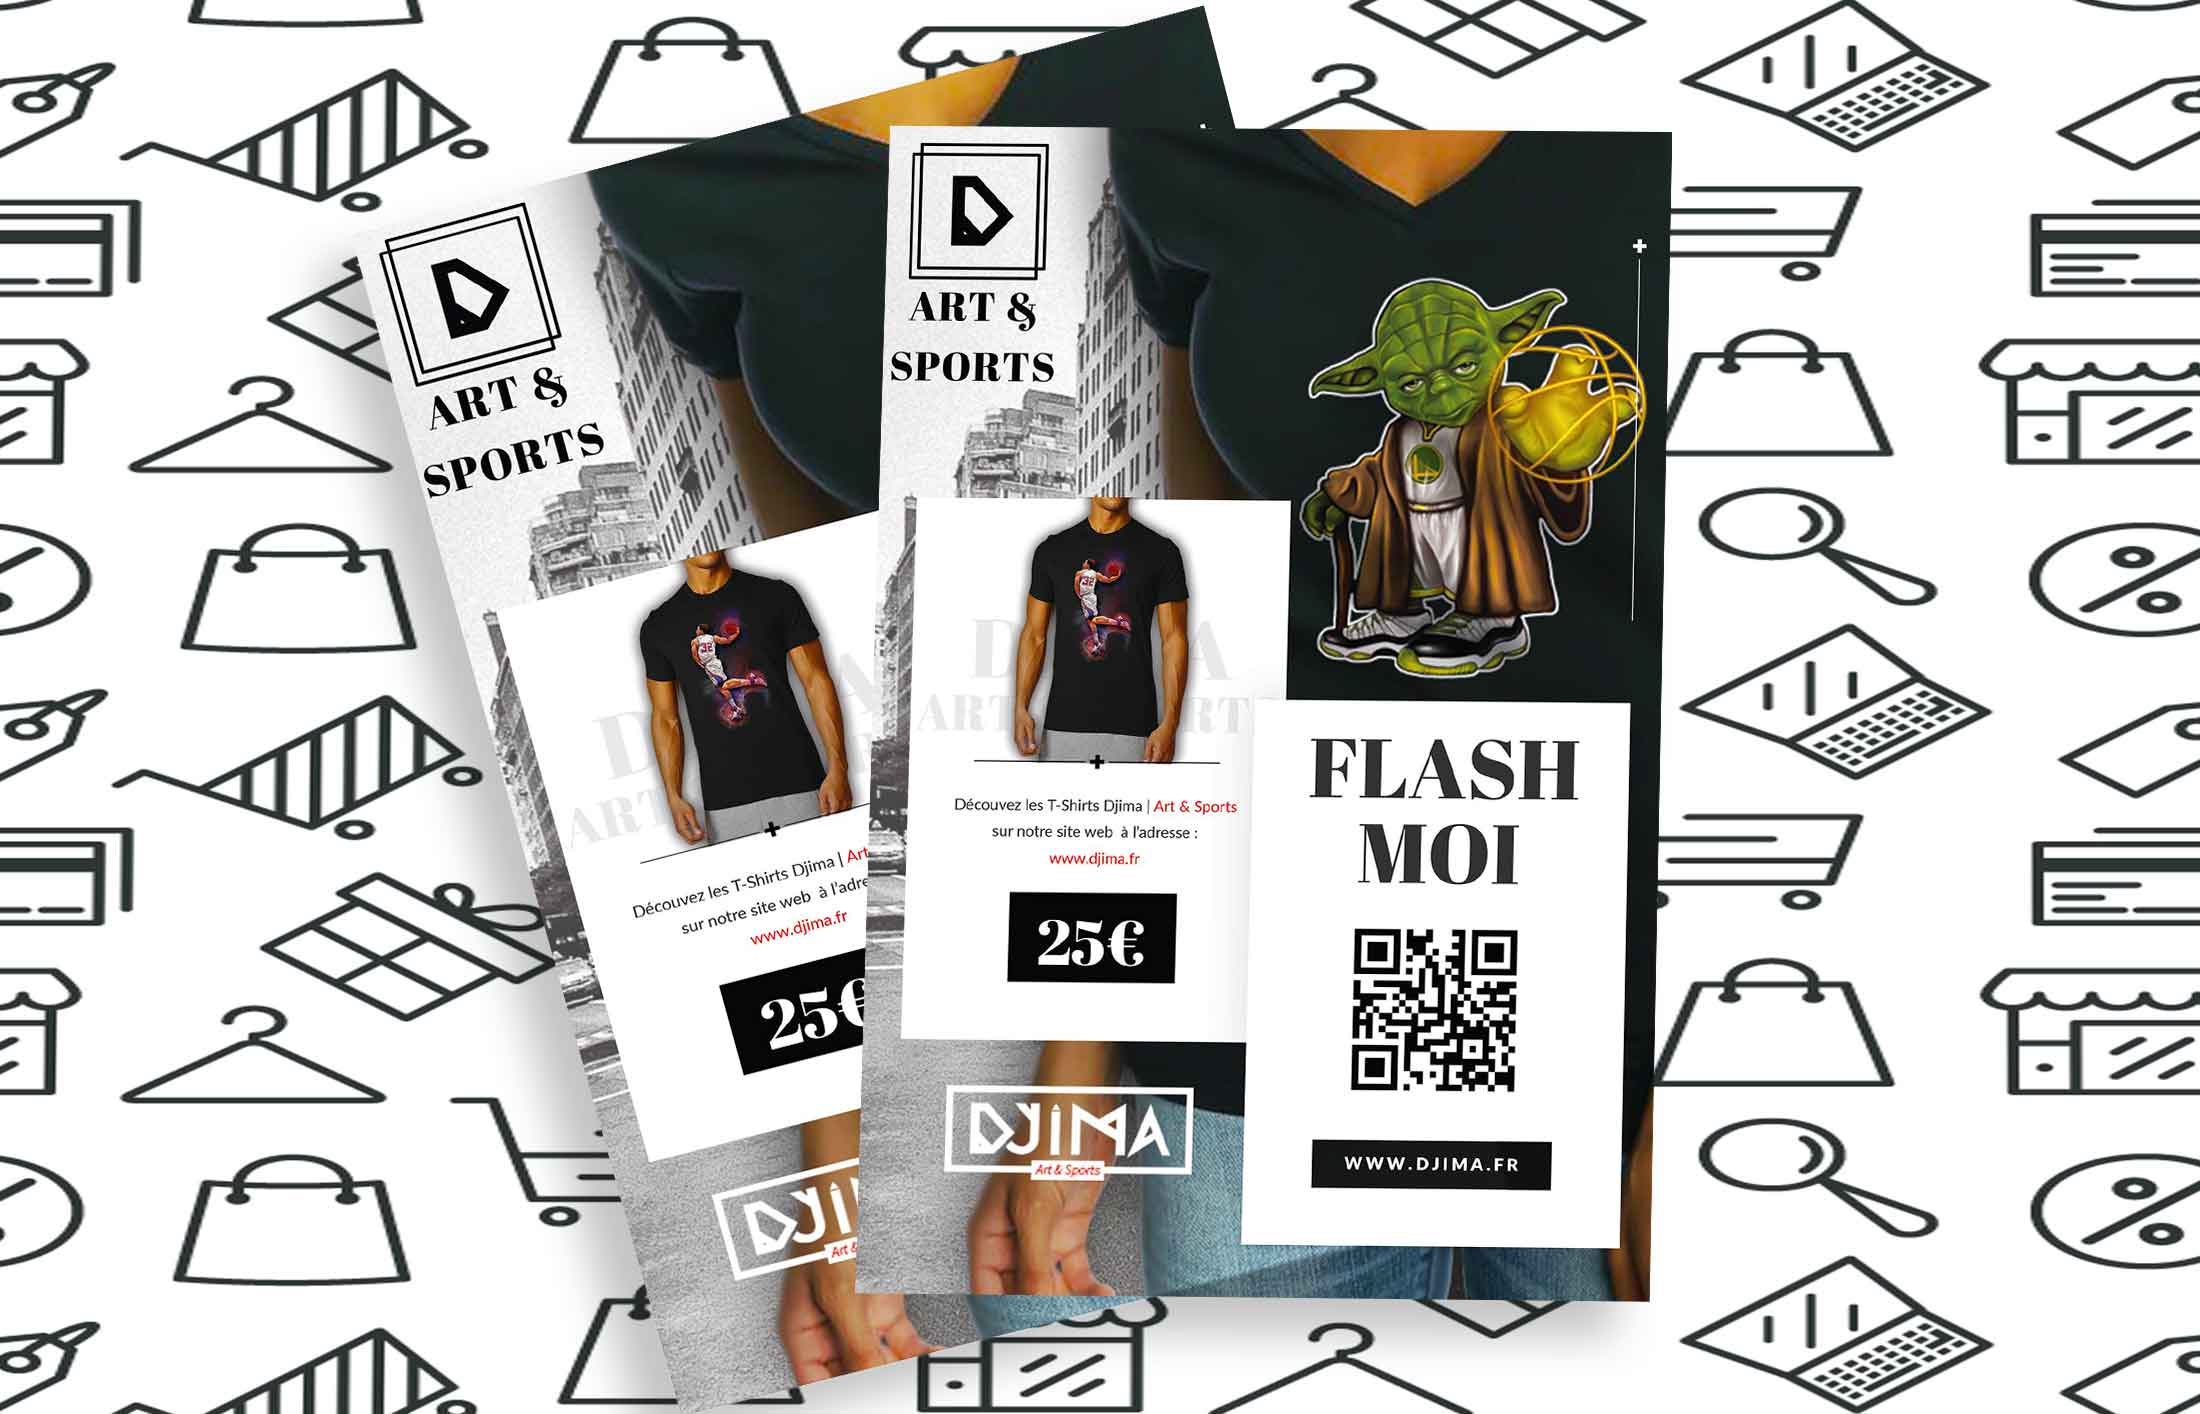 Creation-flyer-E-commerce-djima-touch2web